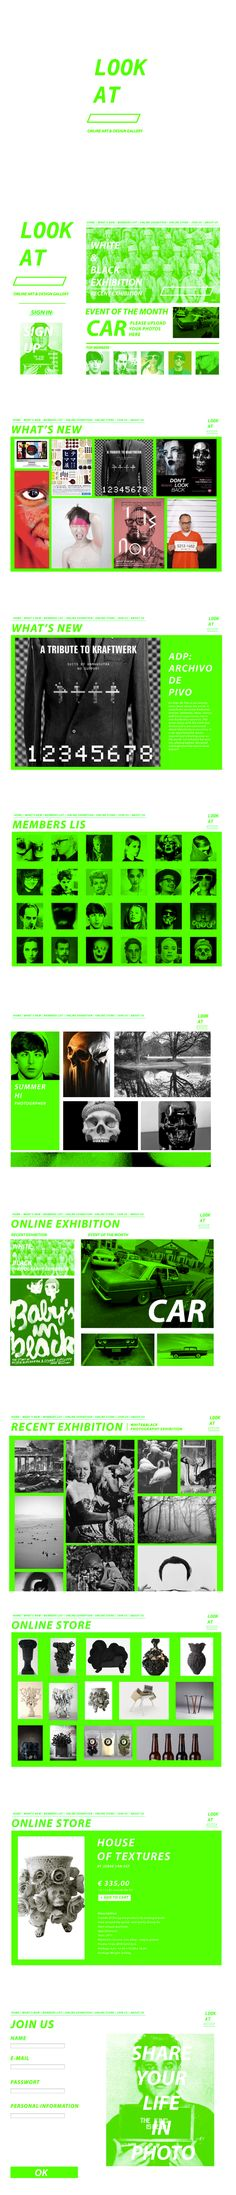 LOOK AT online art&design gallery(web design homework) on Behance